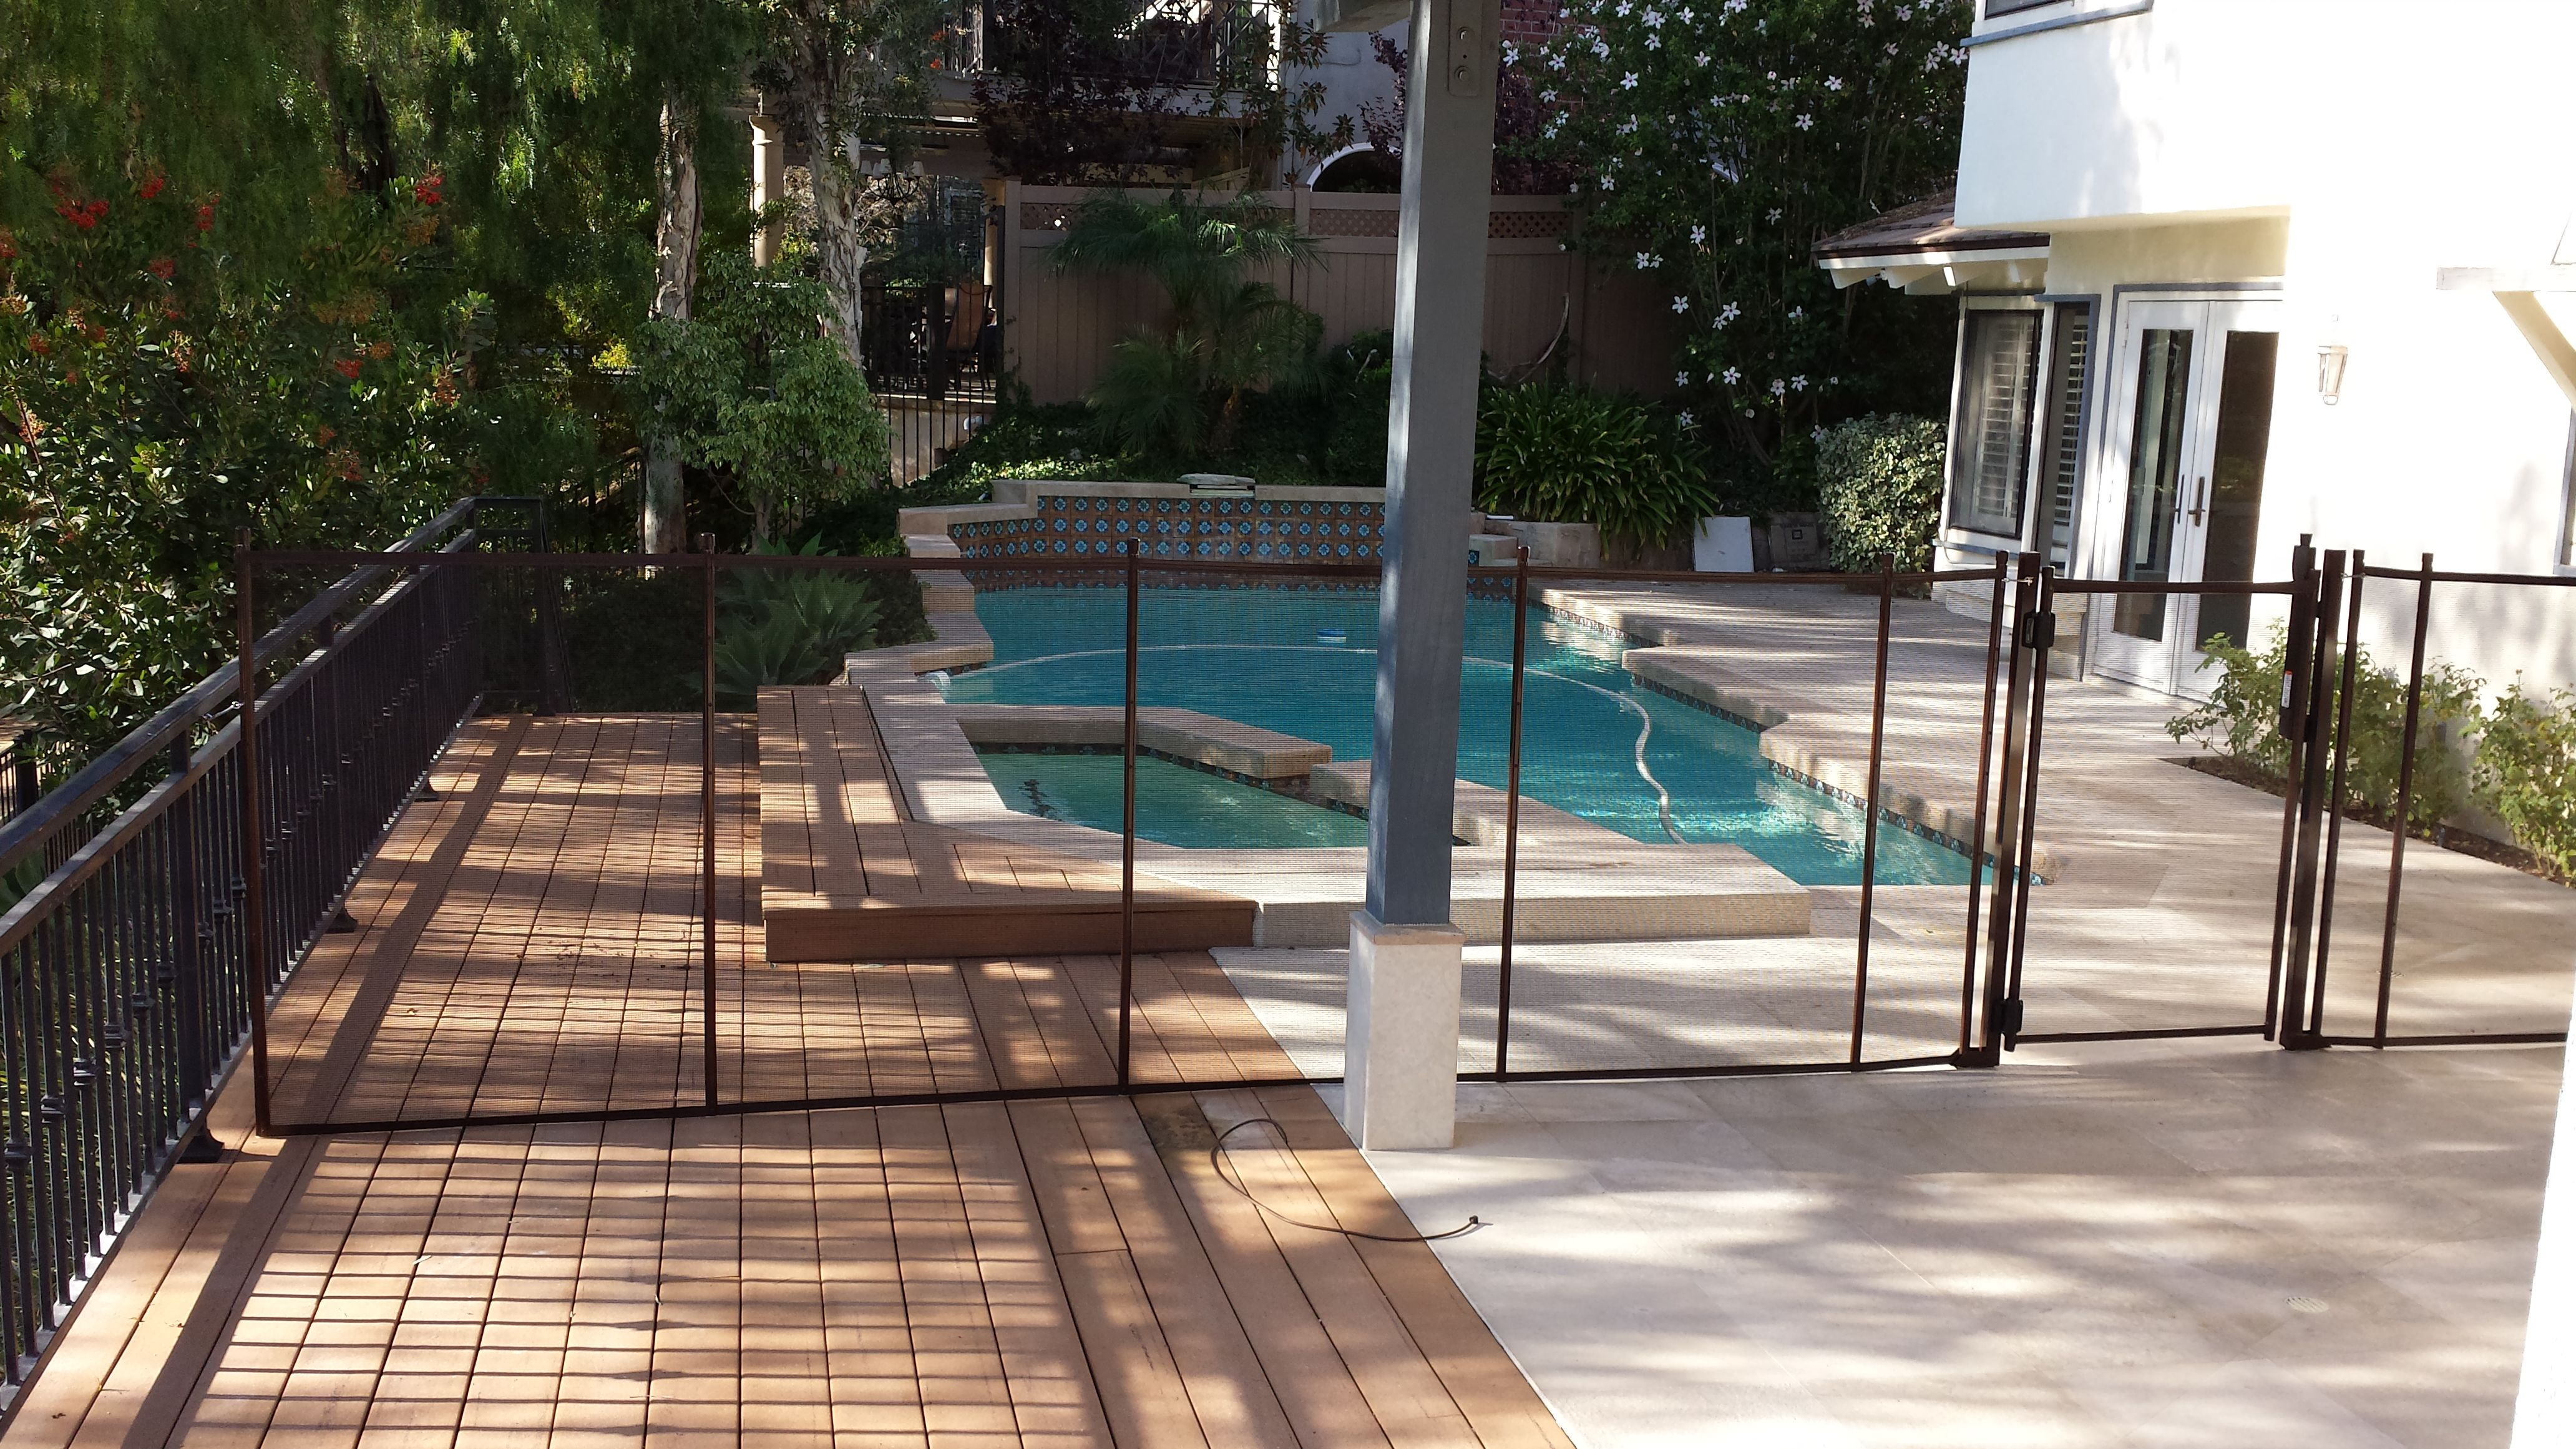 Child safety fencing installed on a wood deck removable